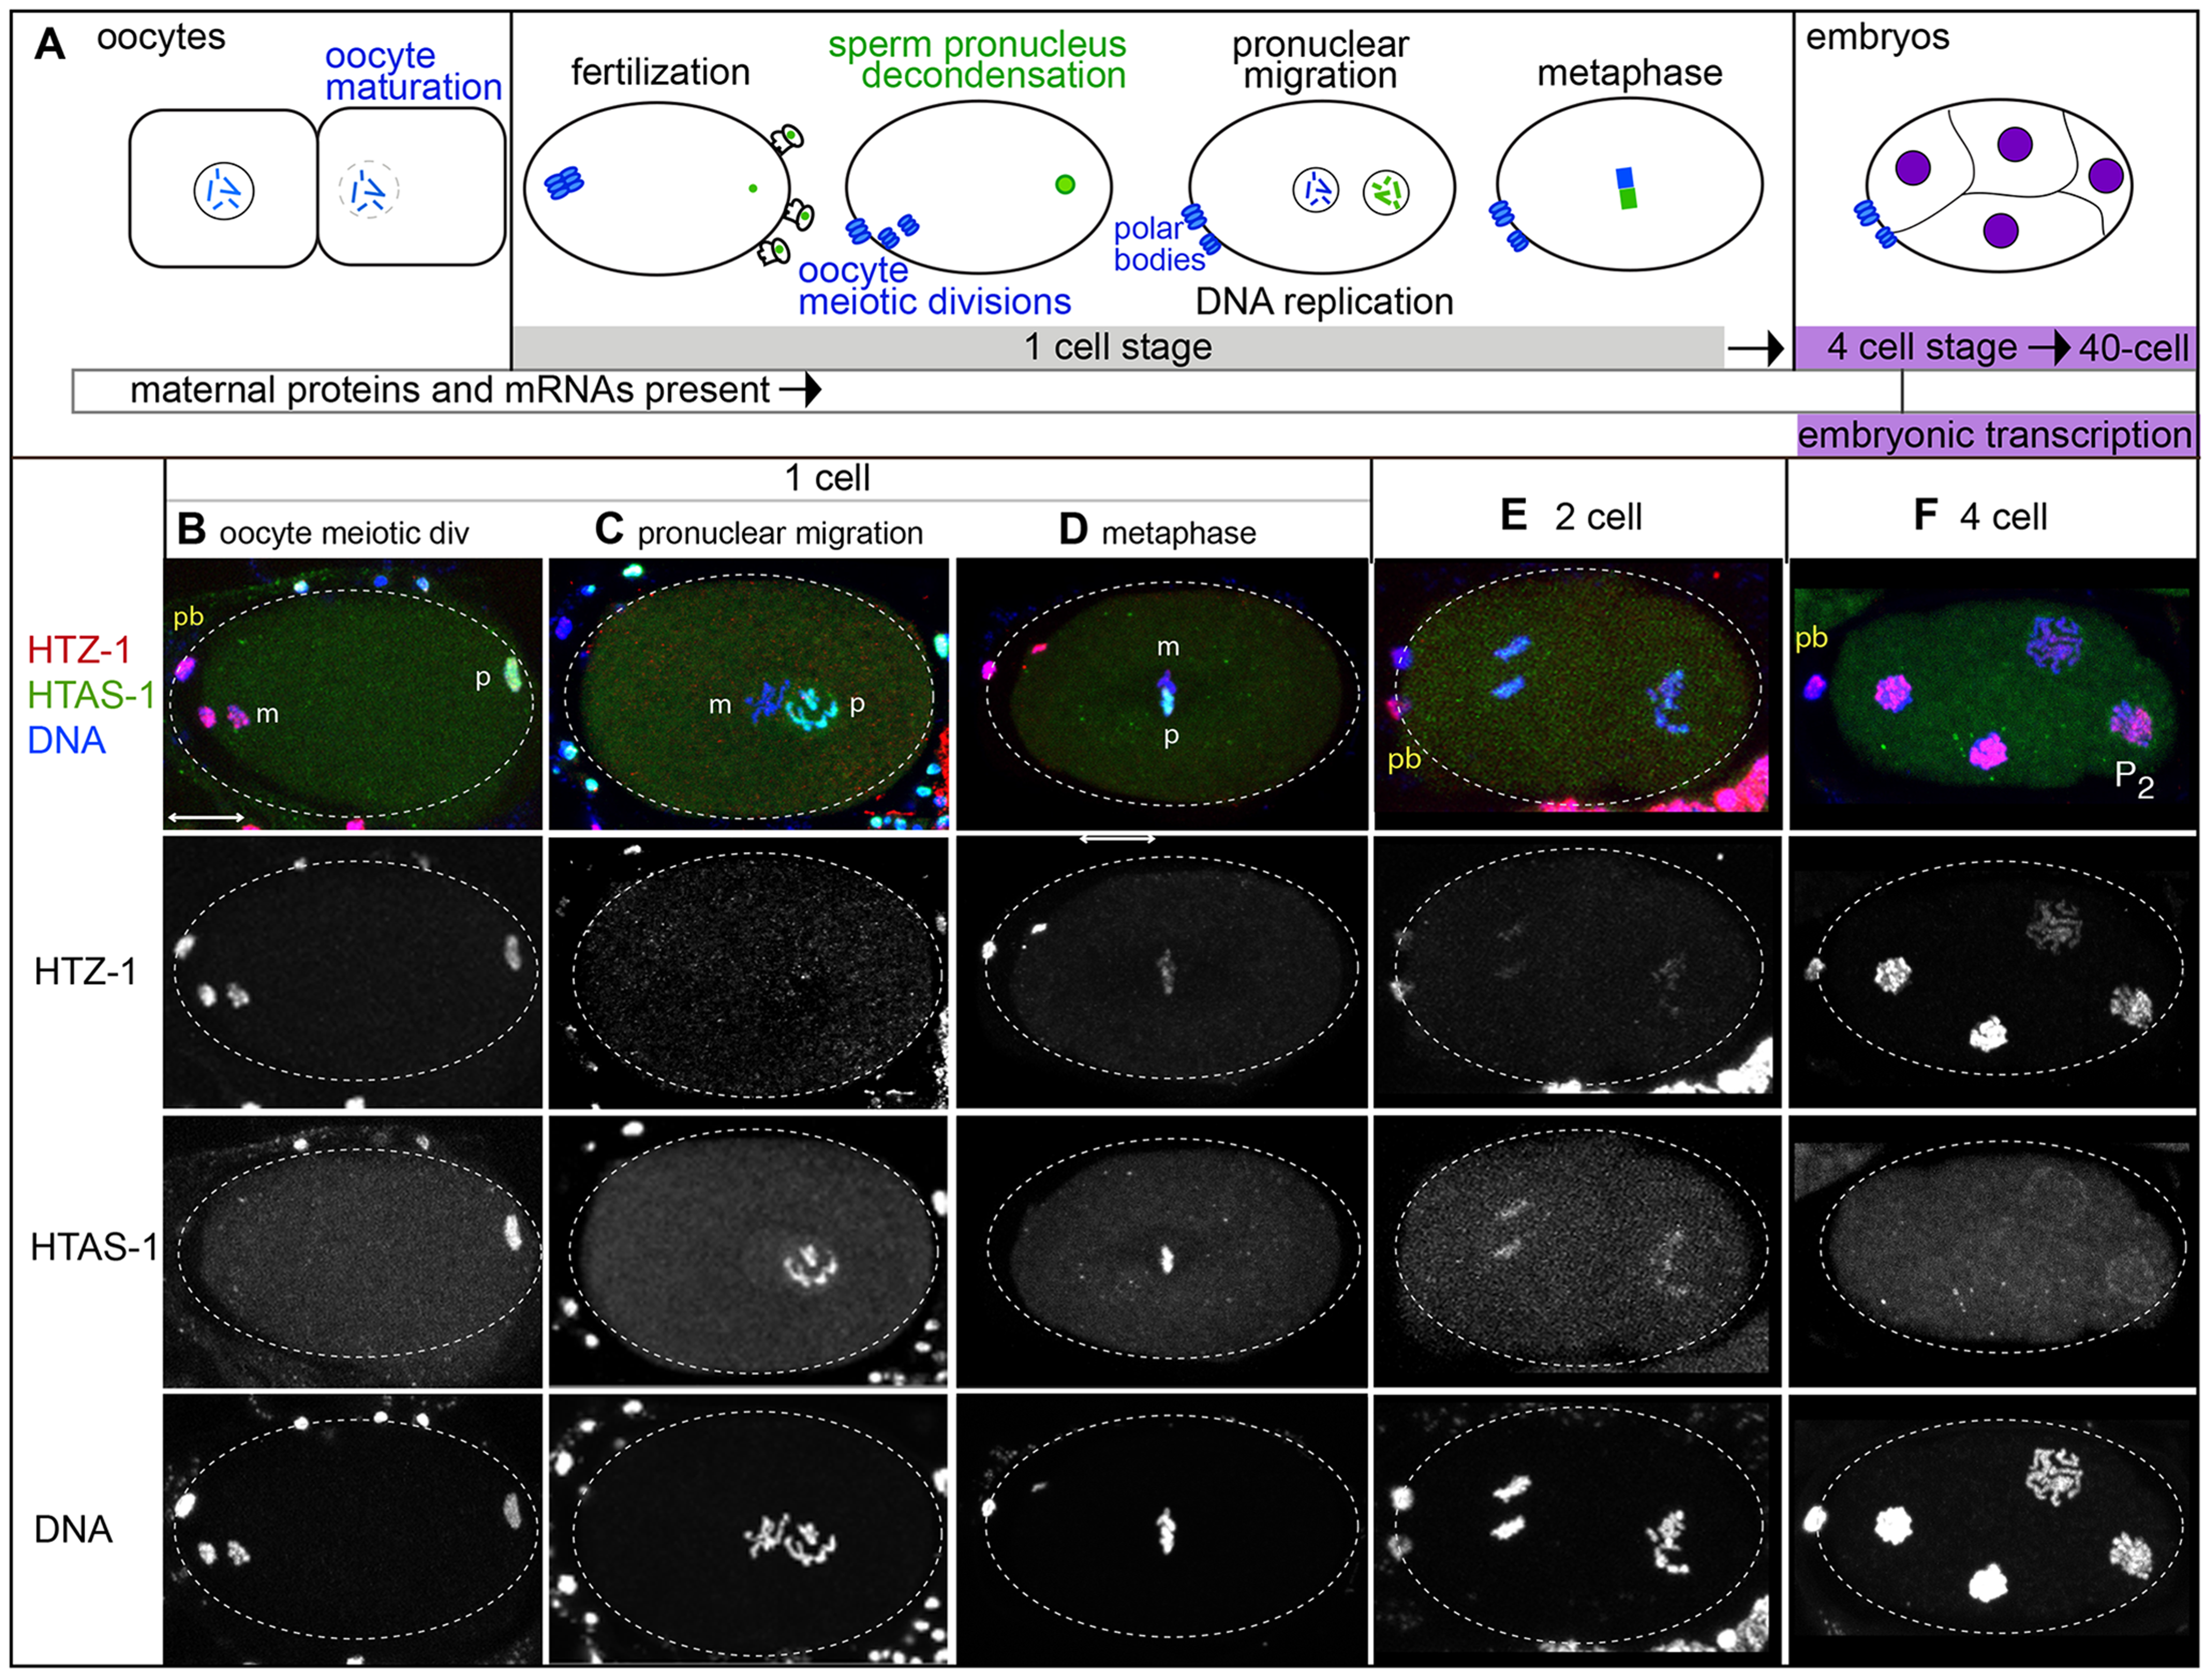 Histone H2A variants have different fates in the new embryo.